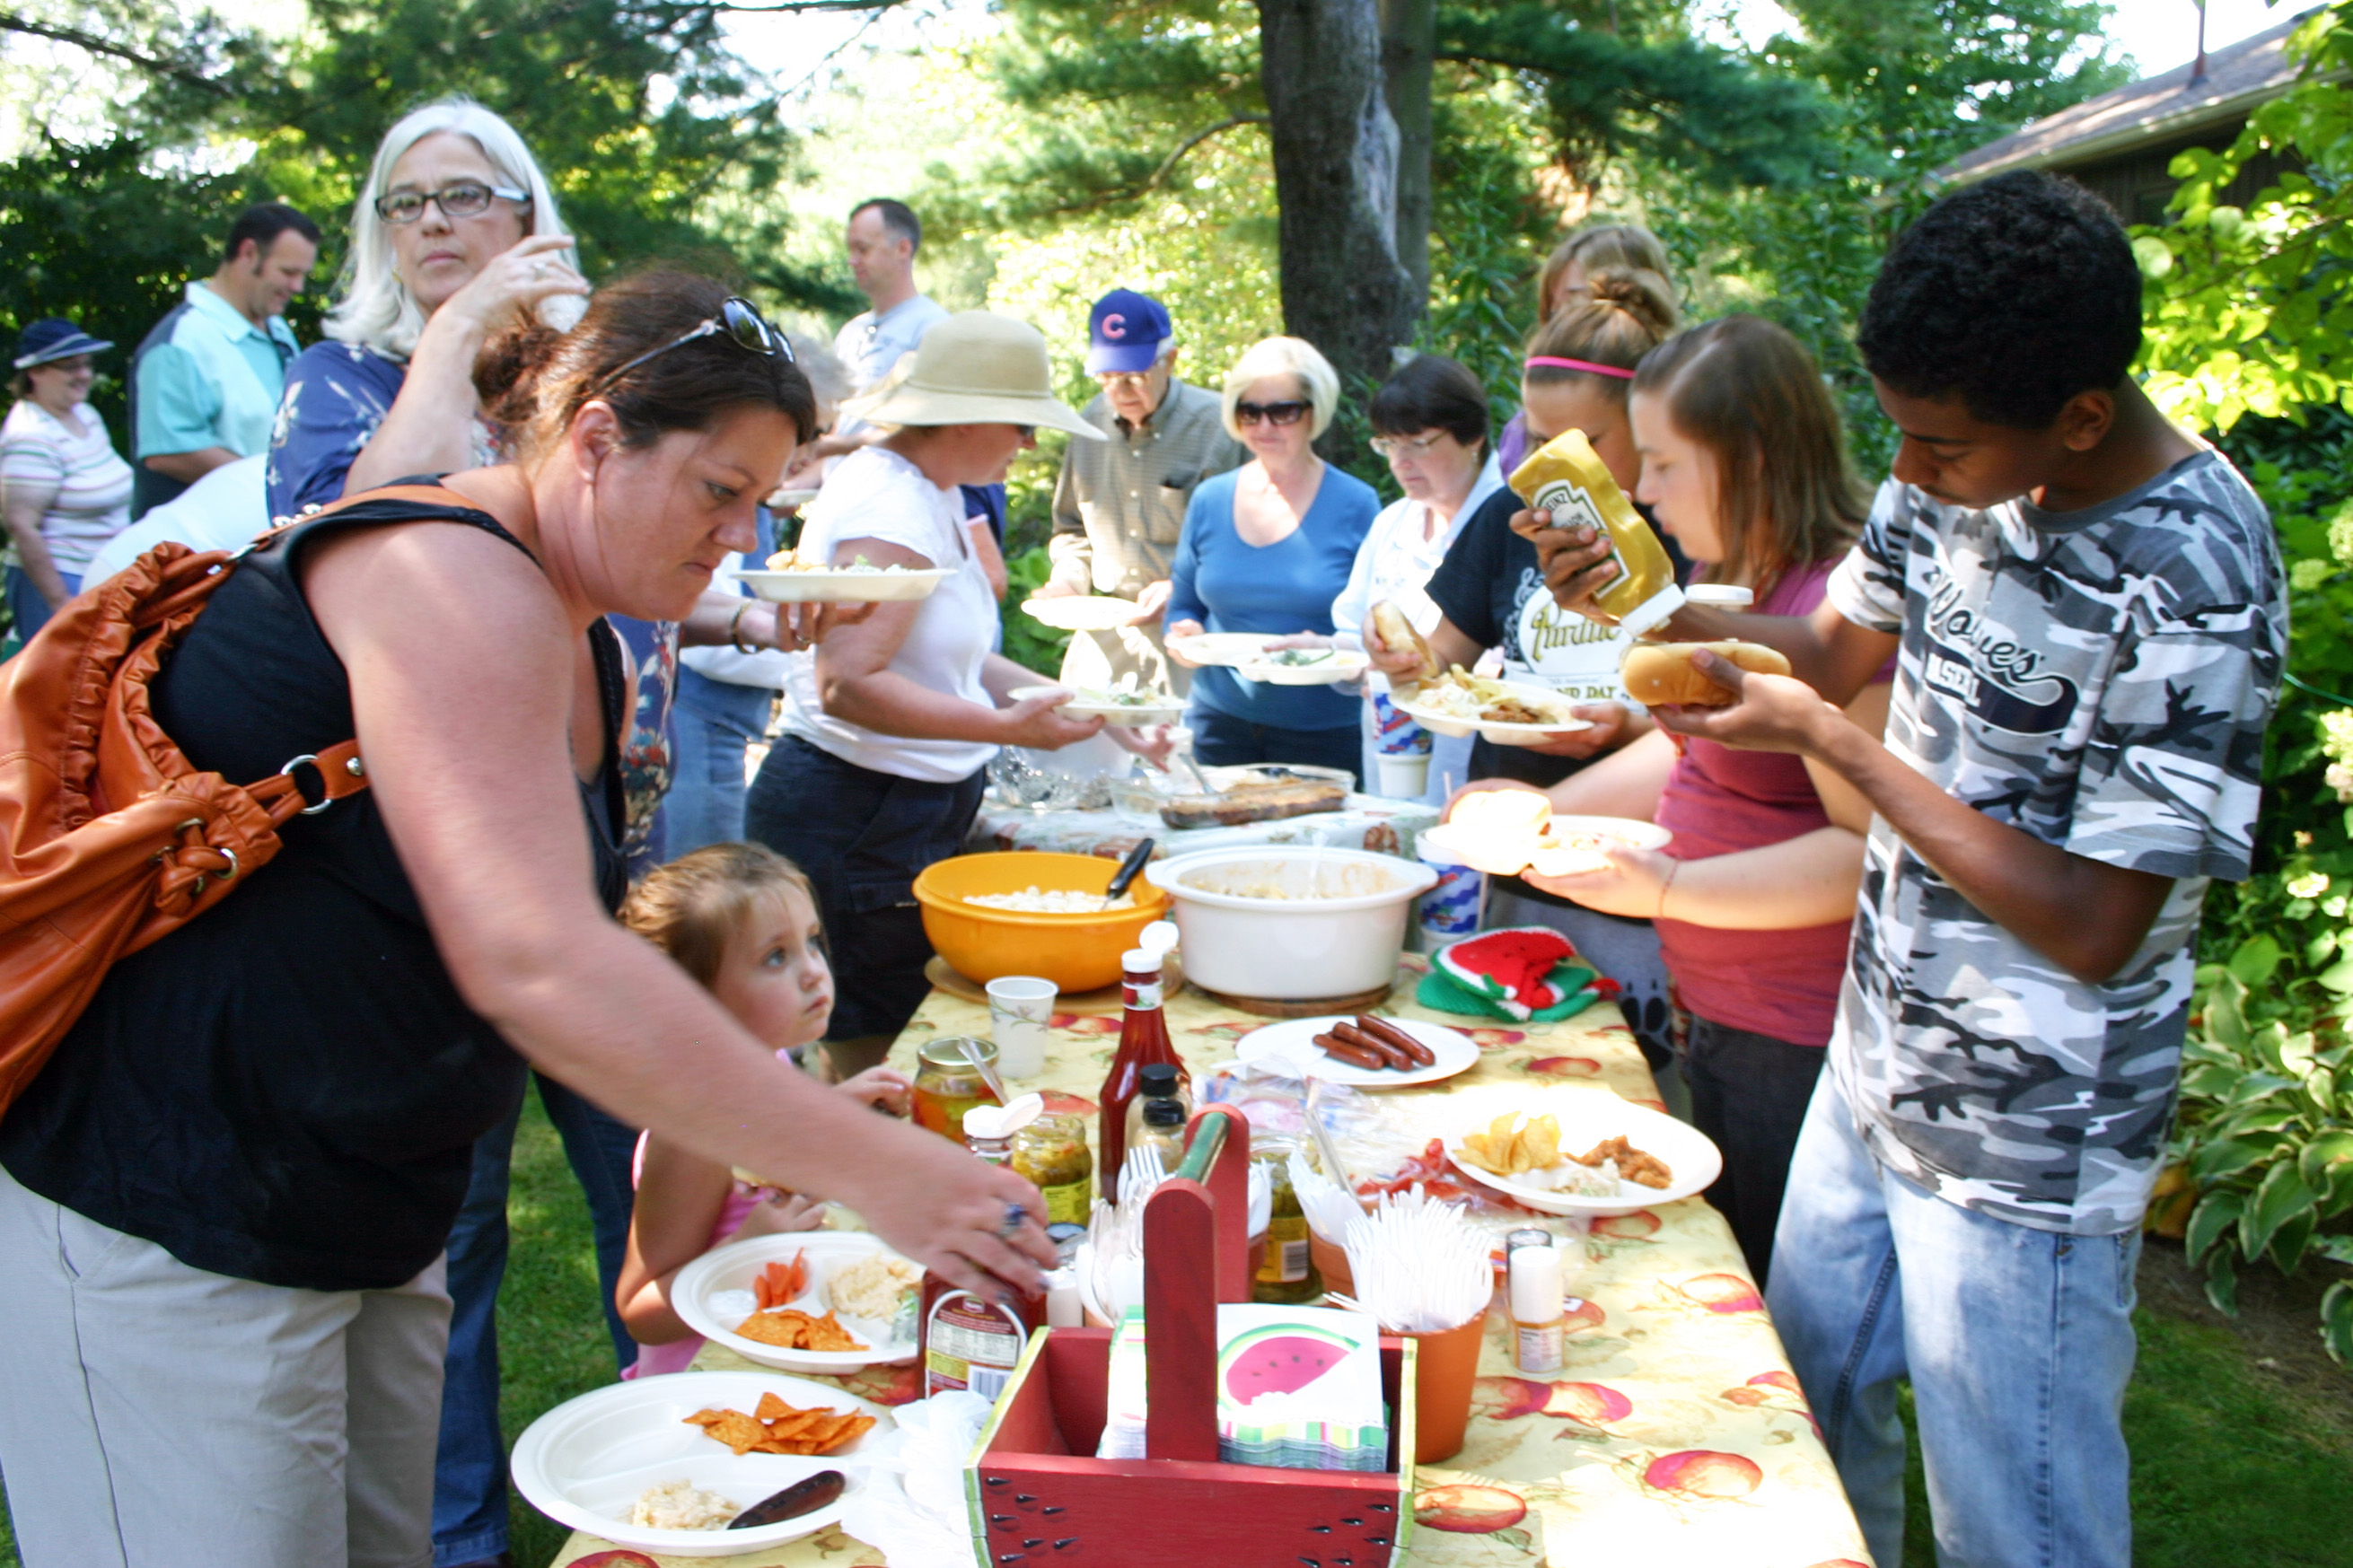 Church Picnic Sunday, August 24, 2014 12:30 pm – 3 pm